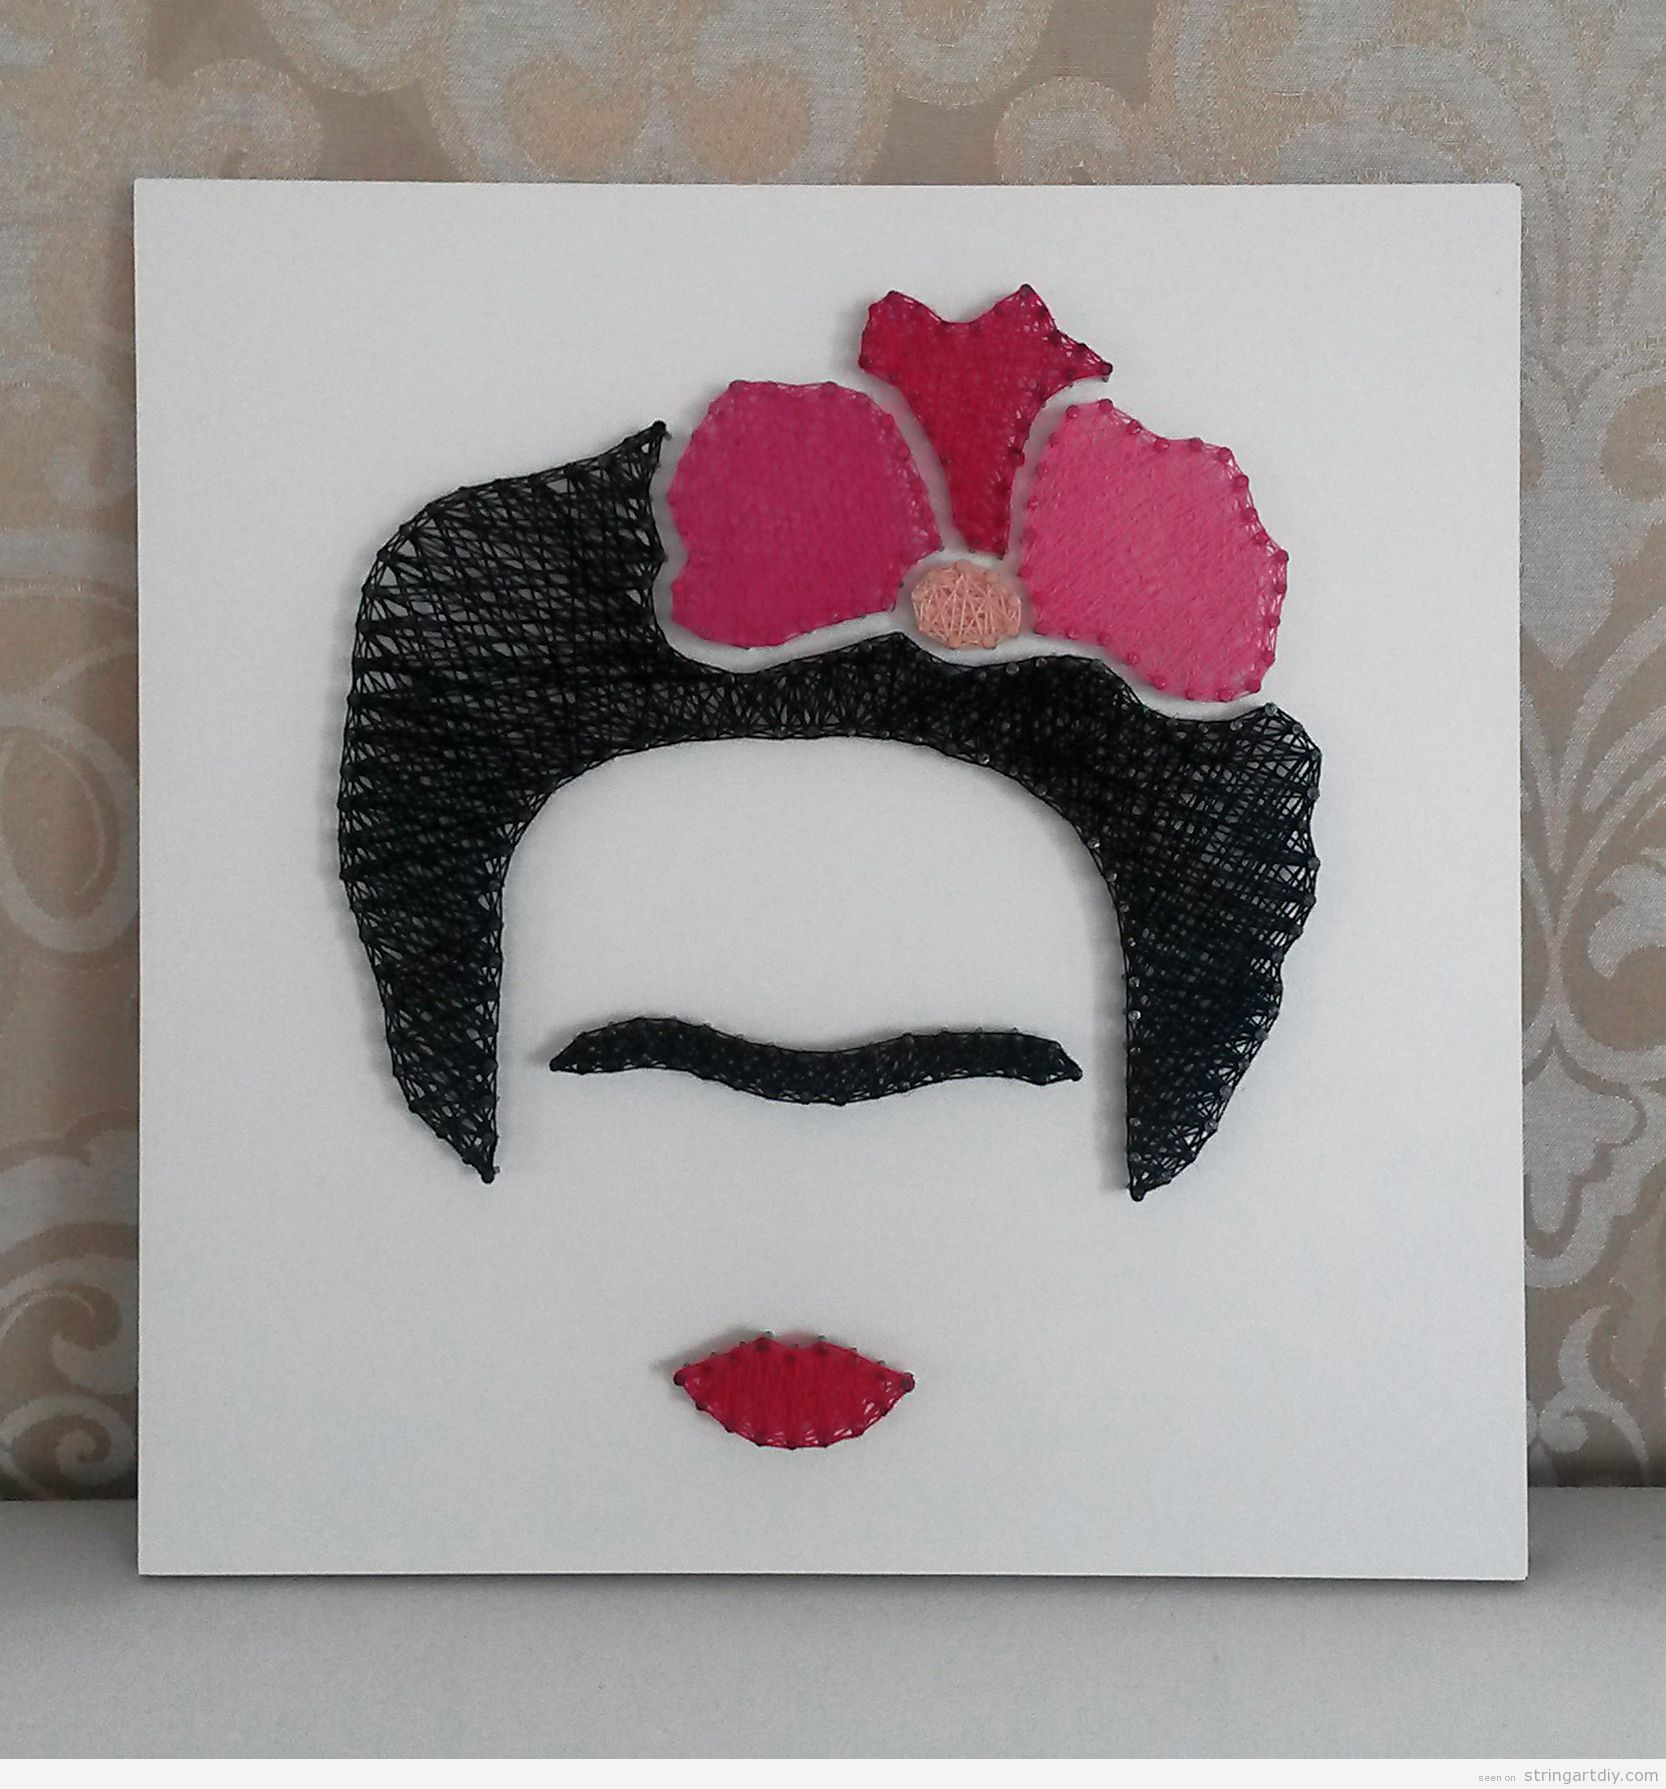 In this one we have less distinctive traits but we are able to recognize her hair updo with flowers eyebrows joined and red lips